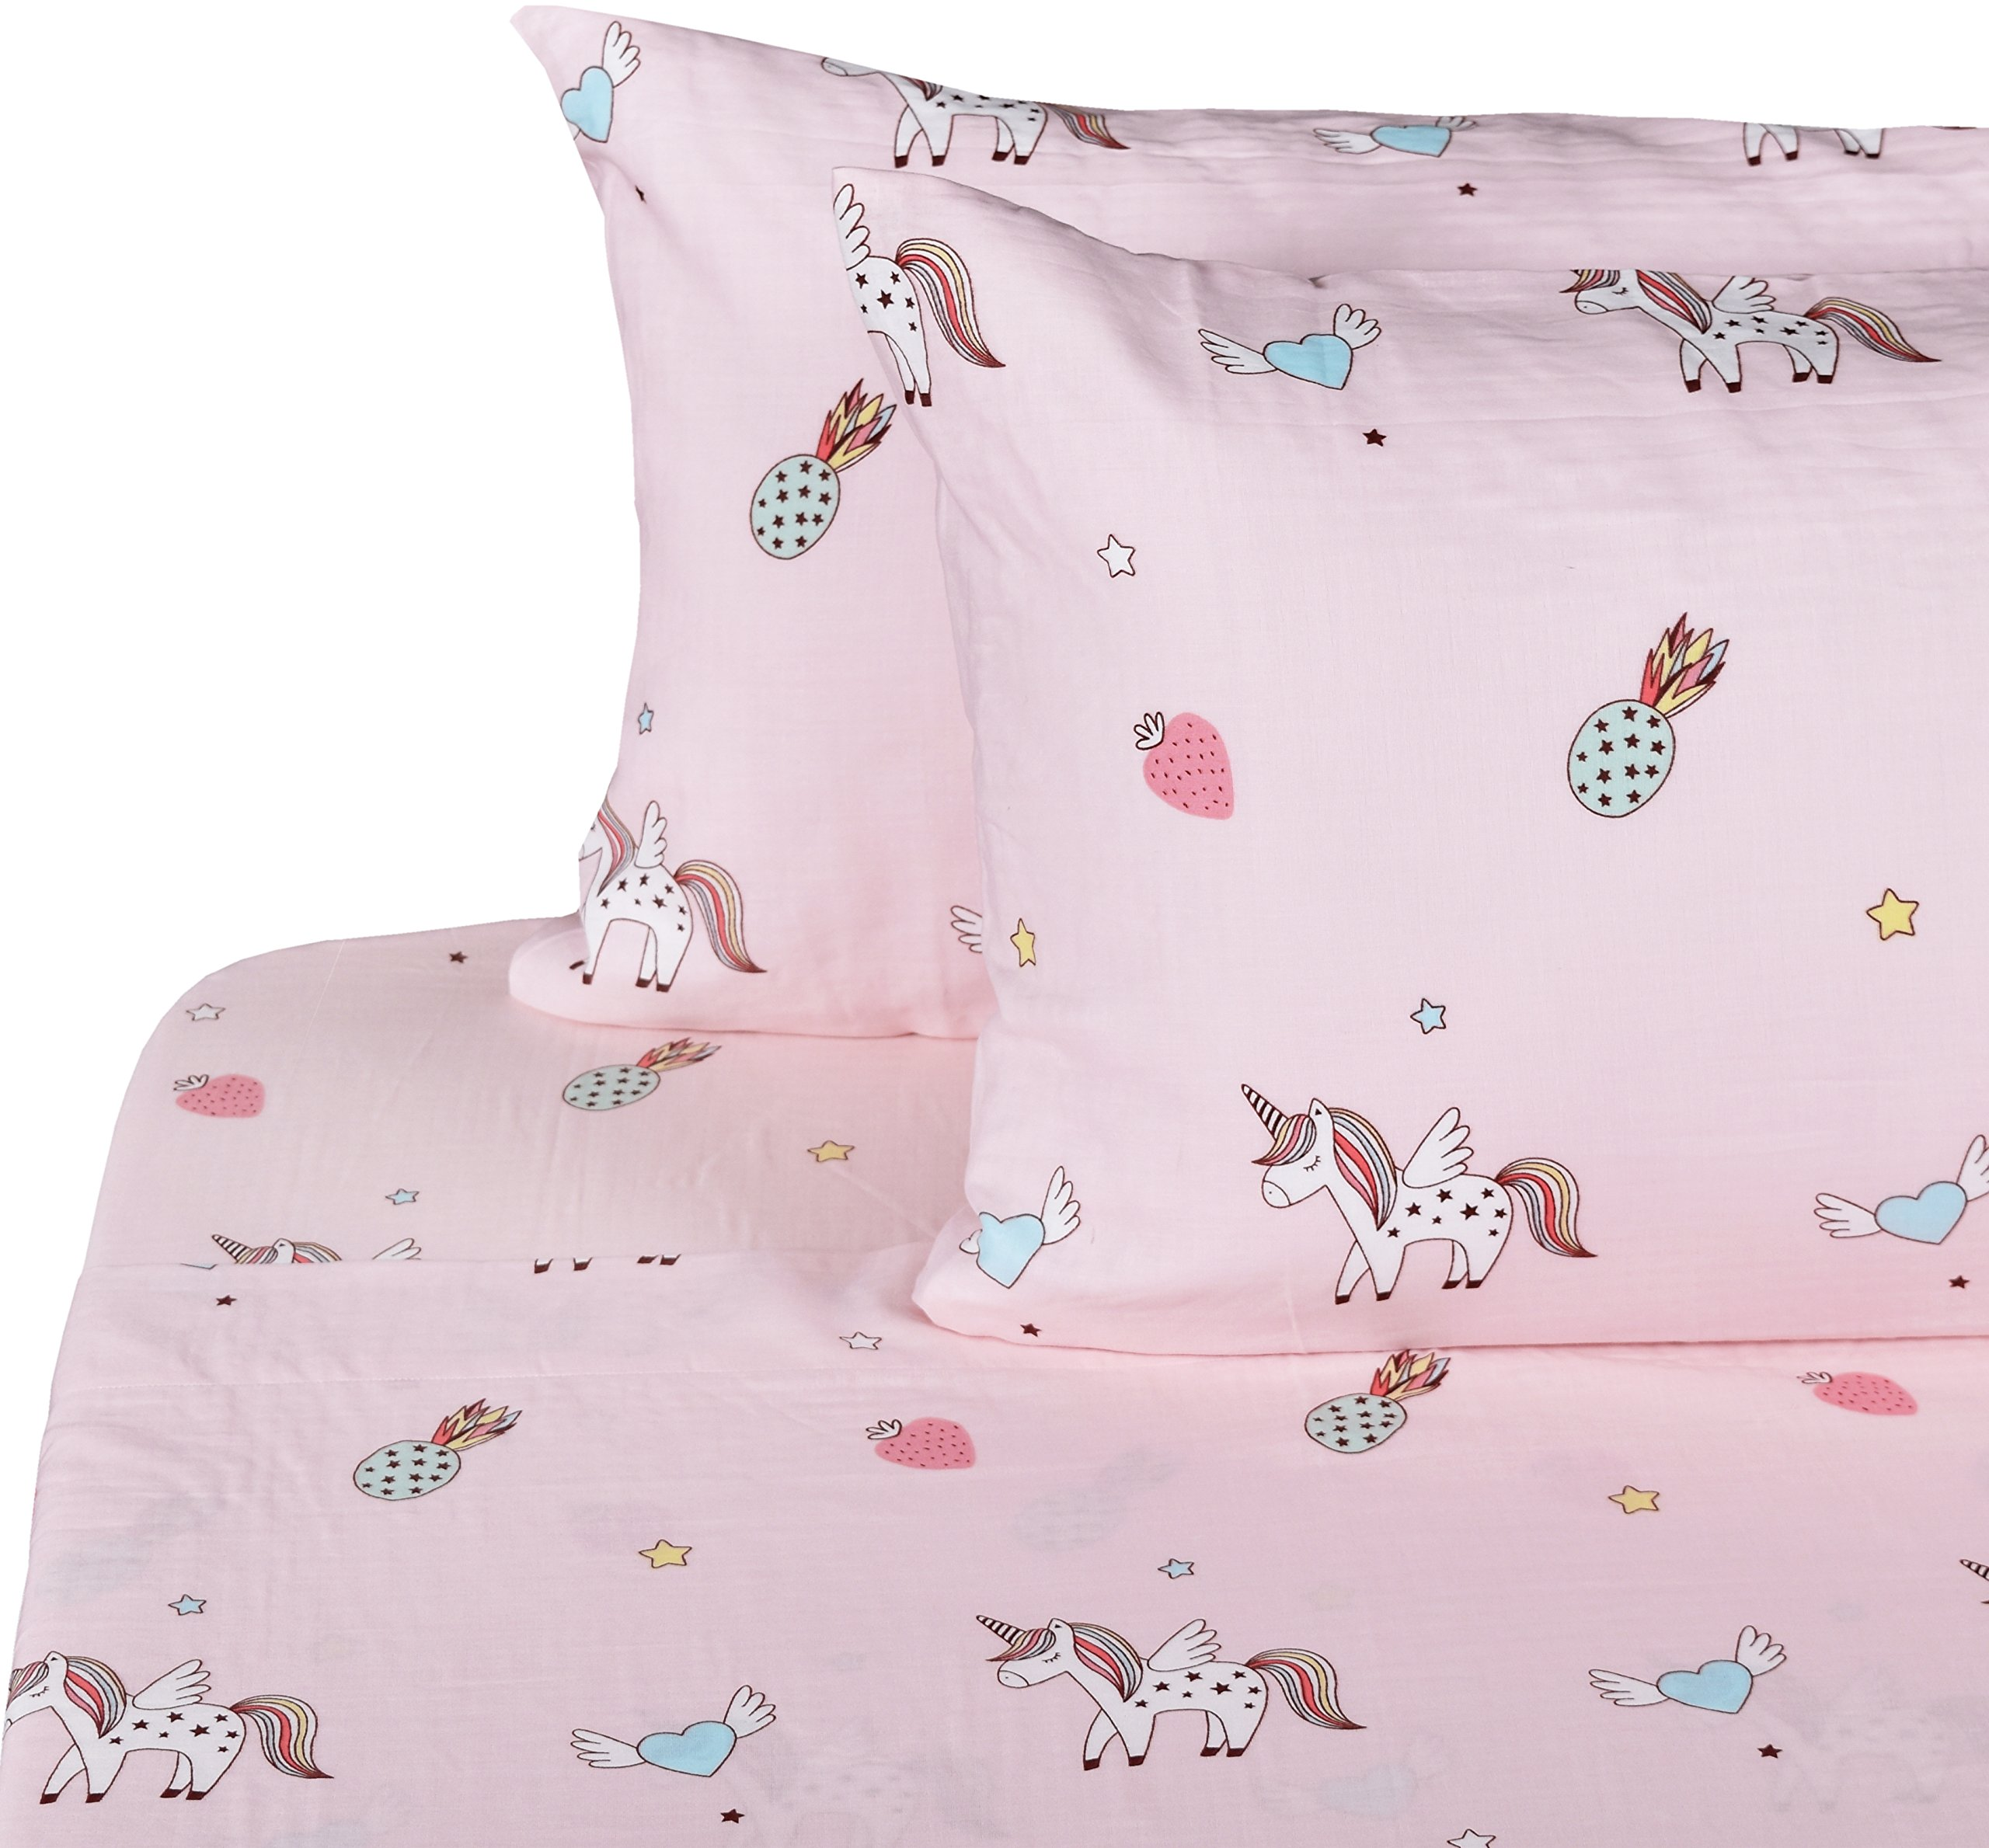 J-pinno Unicorn Happy Girls Double Layer Muslin Cotton Bed Sheet Set Full, Flat Sheet & Fitted Sheet & Pillowcase Natural Hypoallergenic Bedding Set (16, Full)